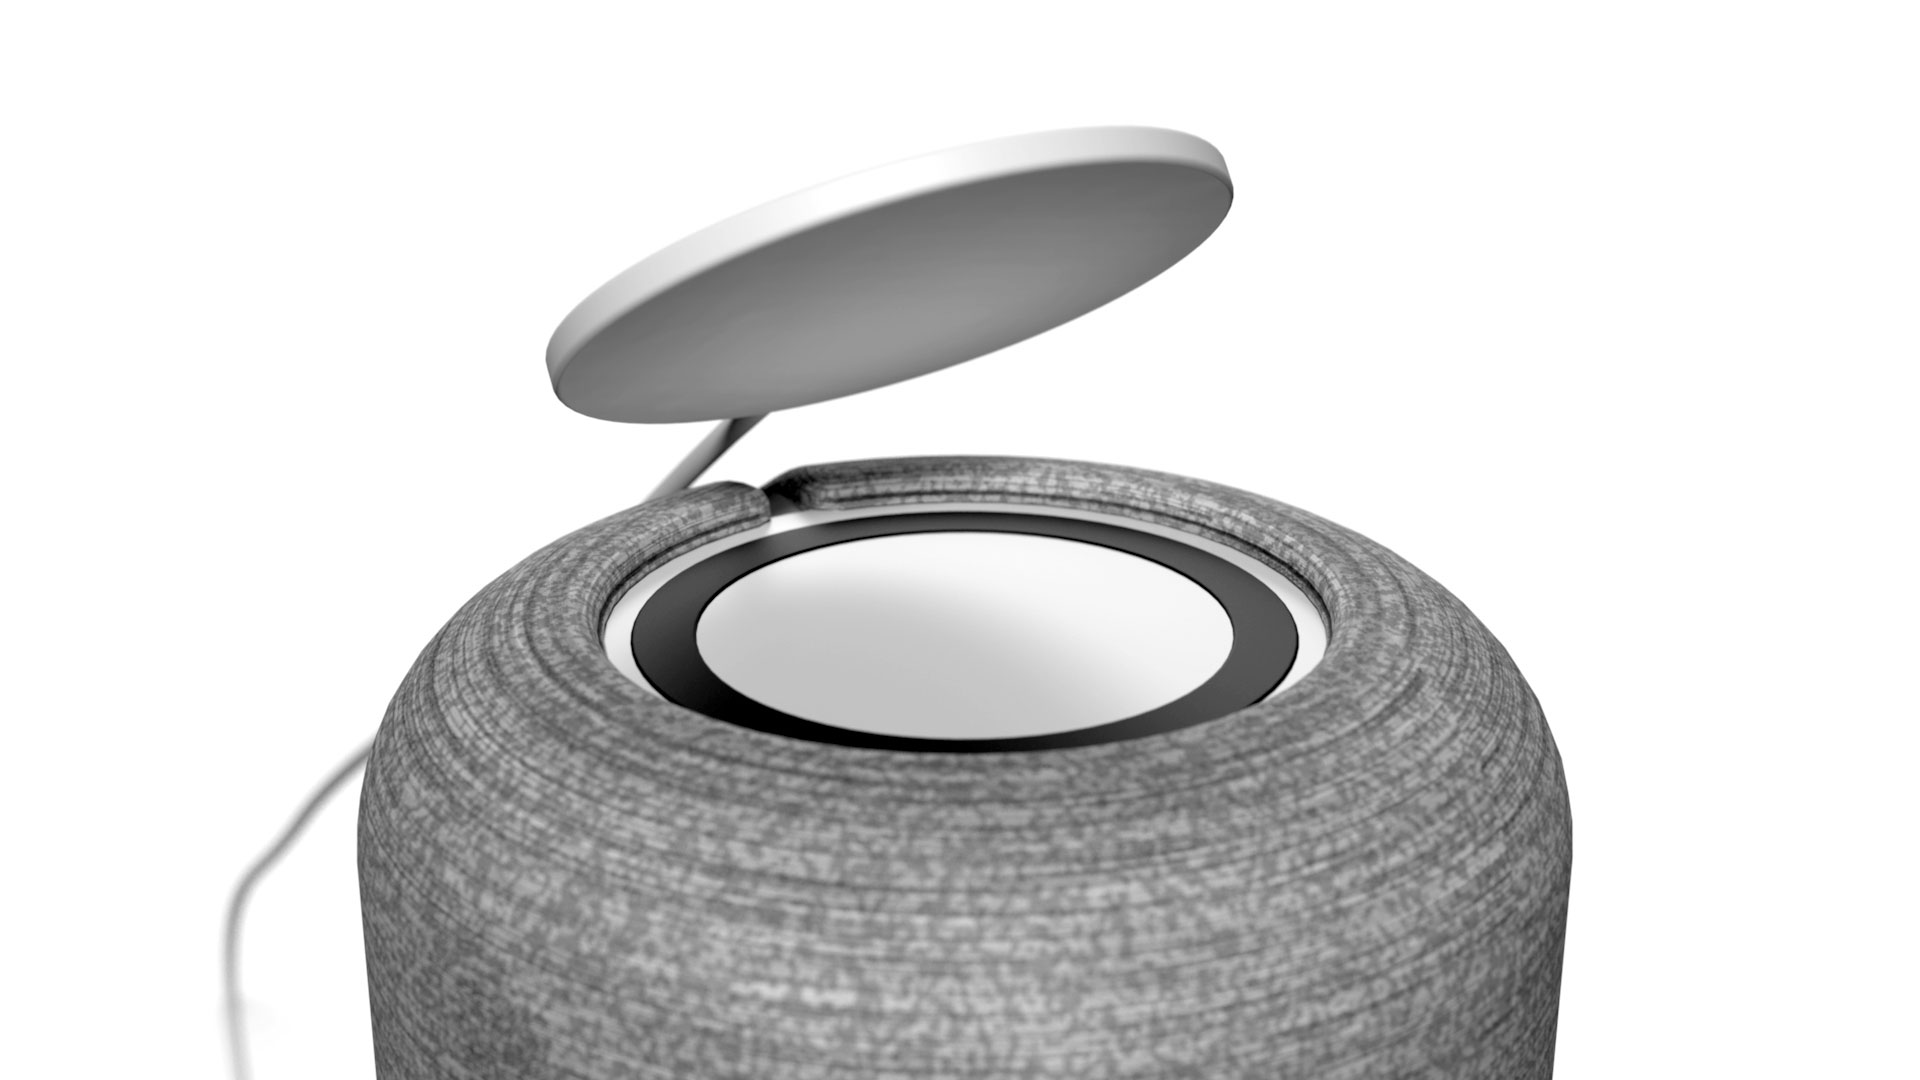 Gloo detail view of wireless charging on smart speaker